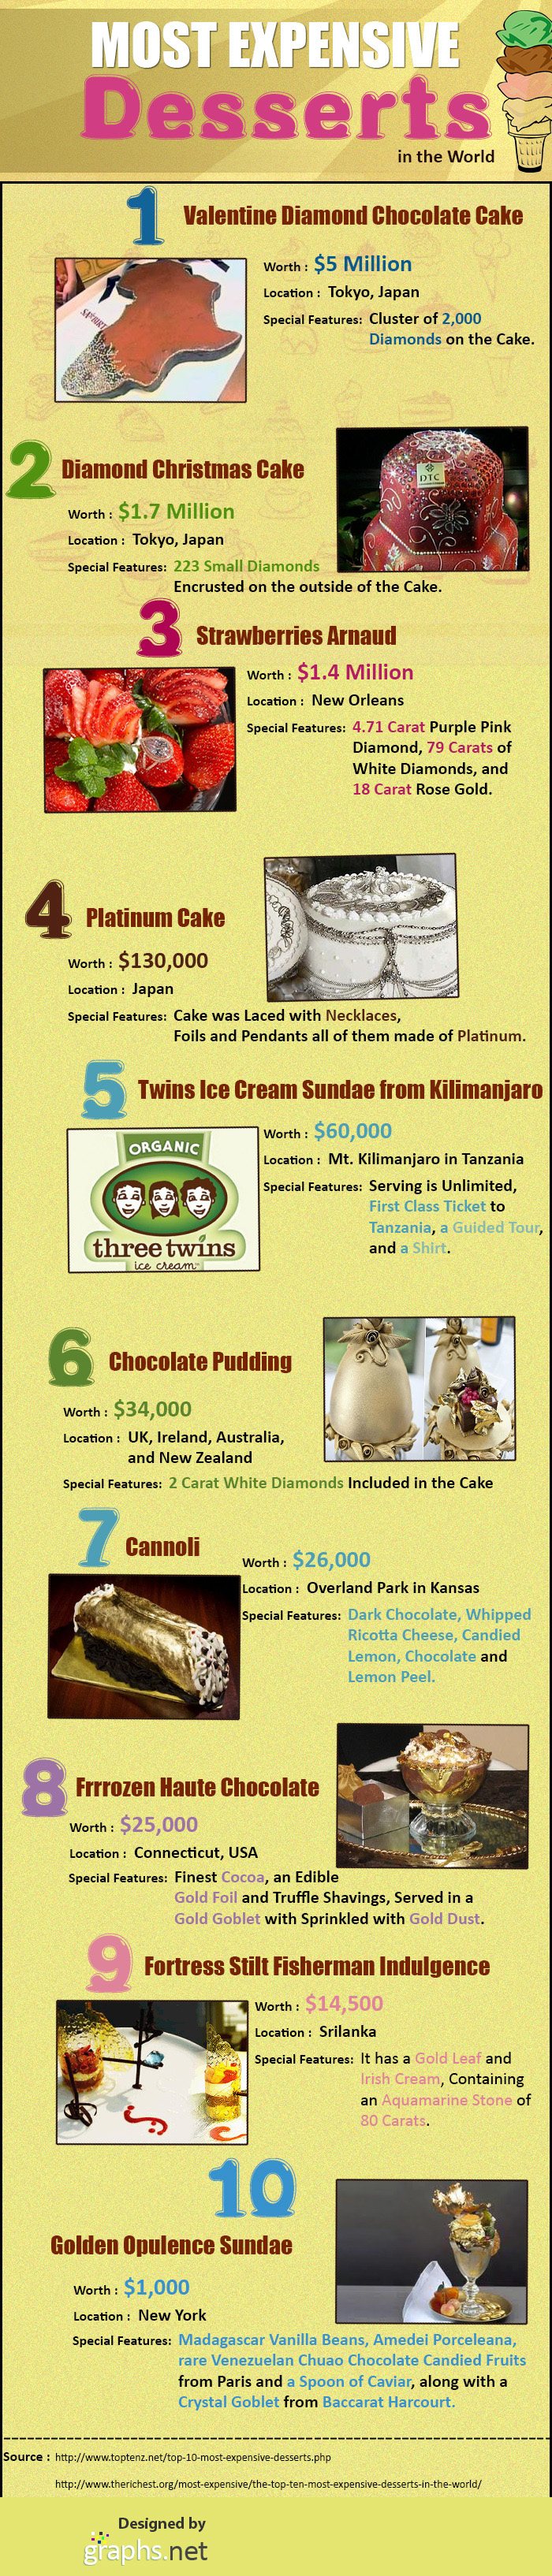 Most Expensive Desserts in the World